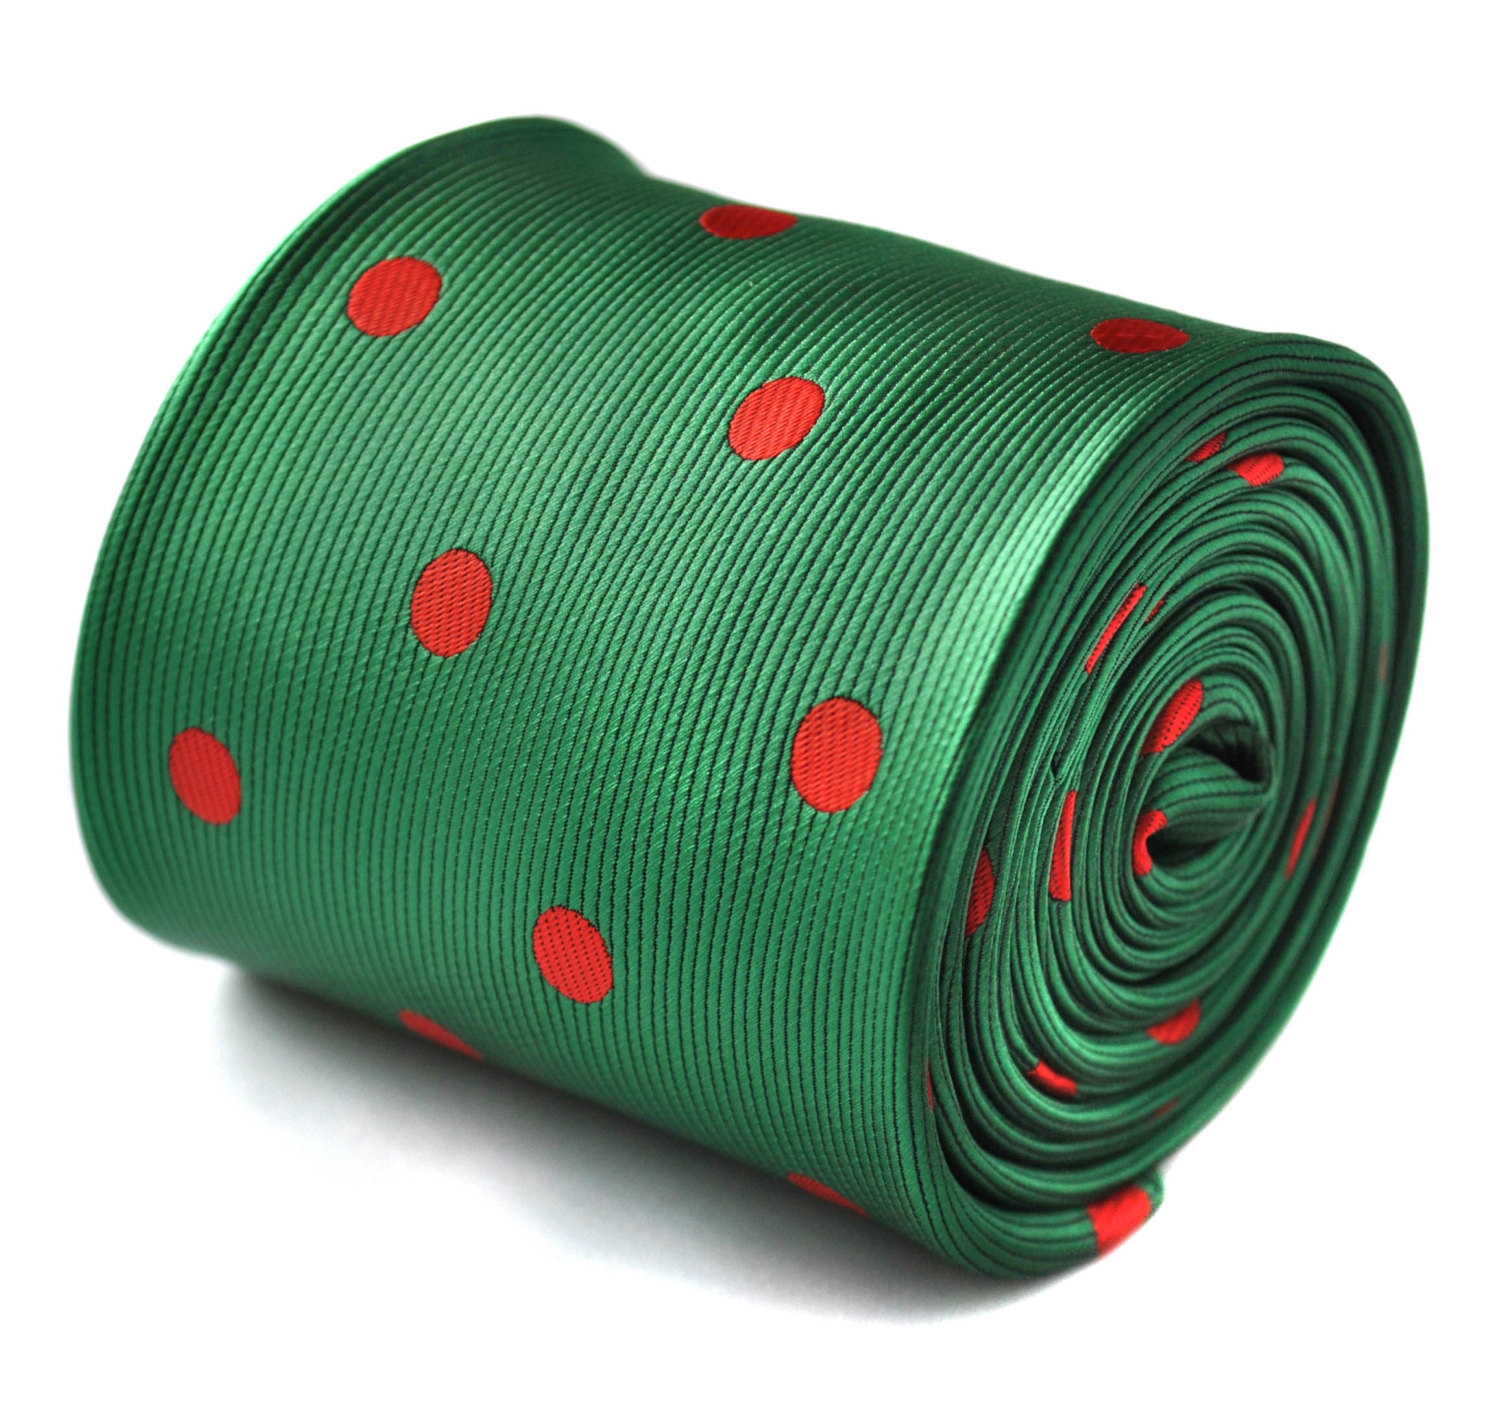 green and red polka spot tie with signature floral design to the rear by Frederi